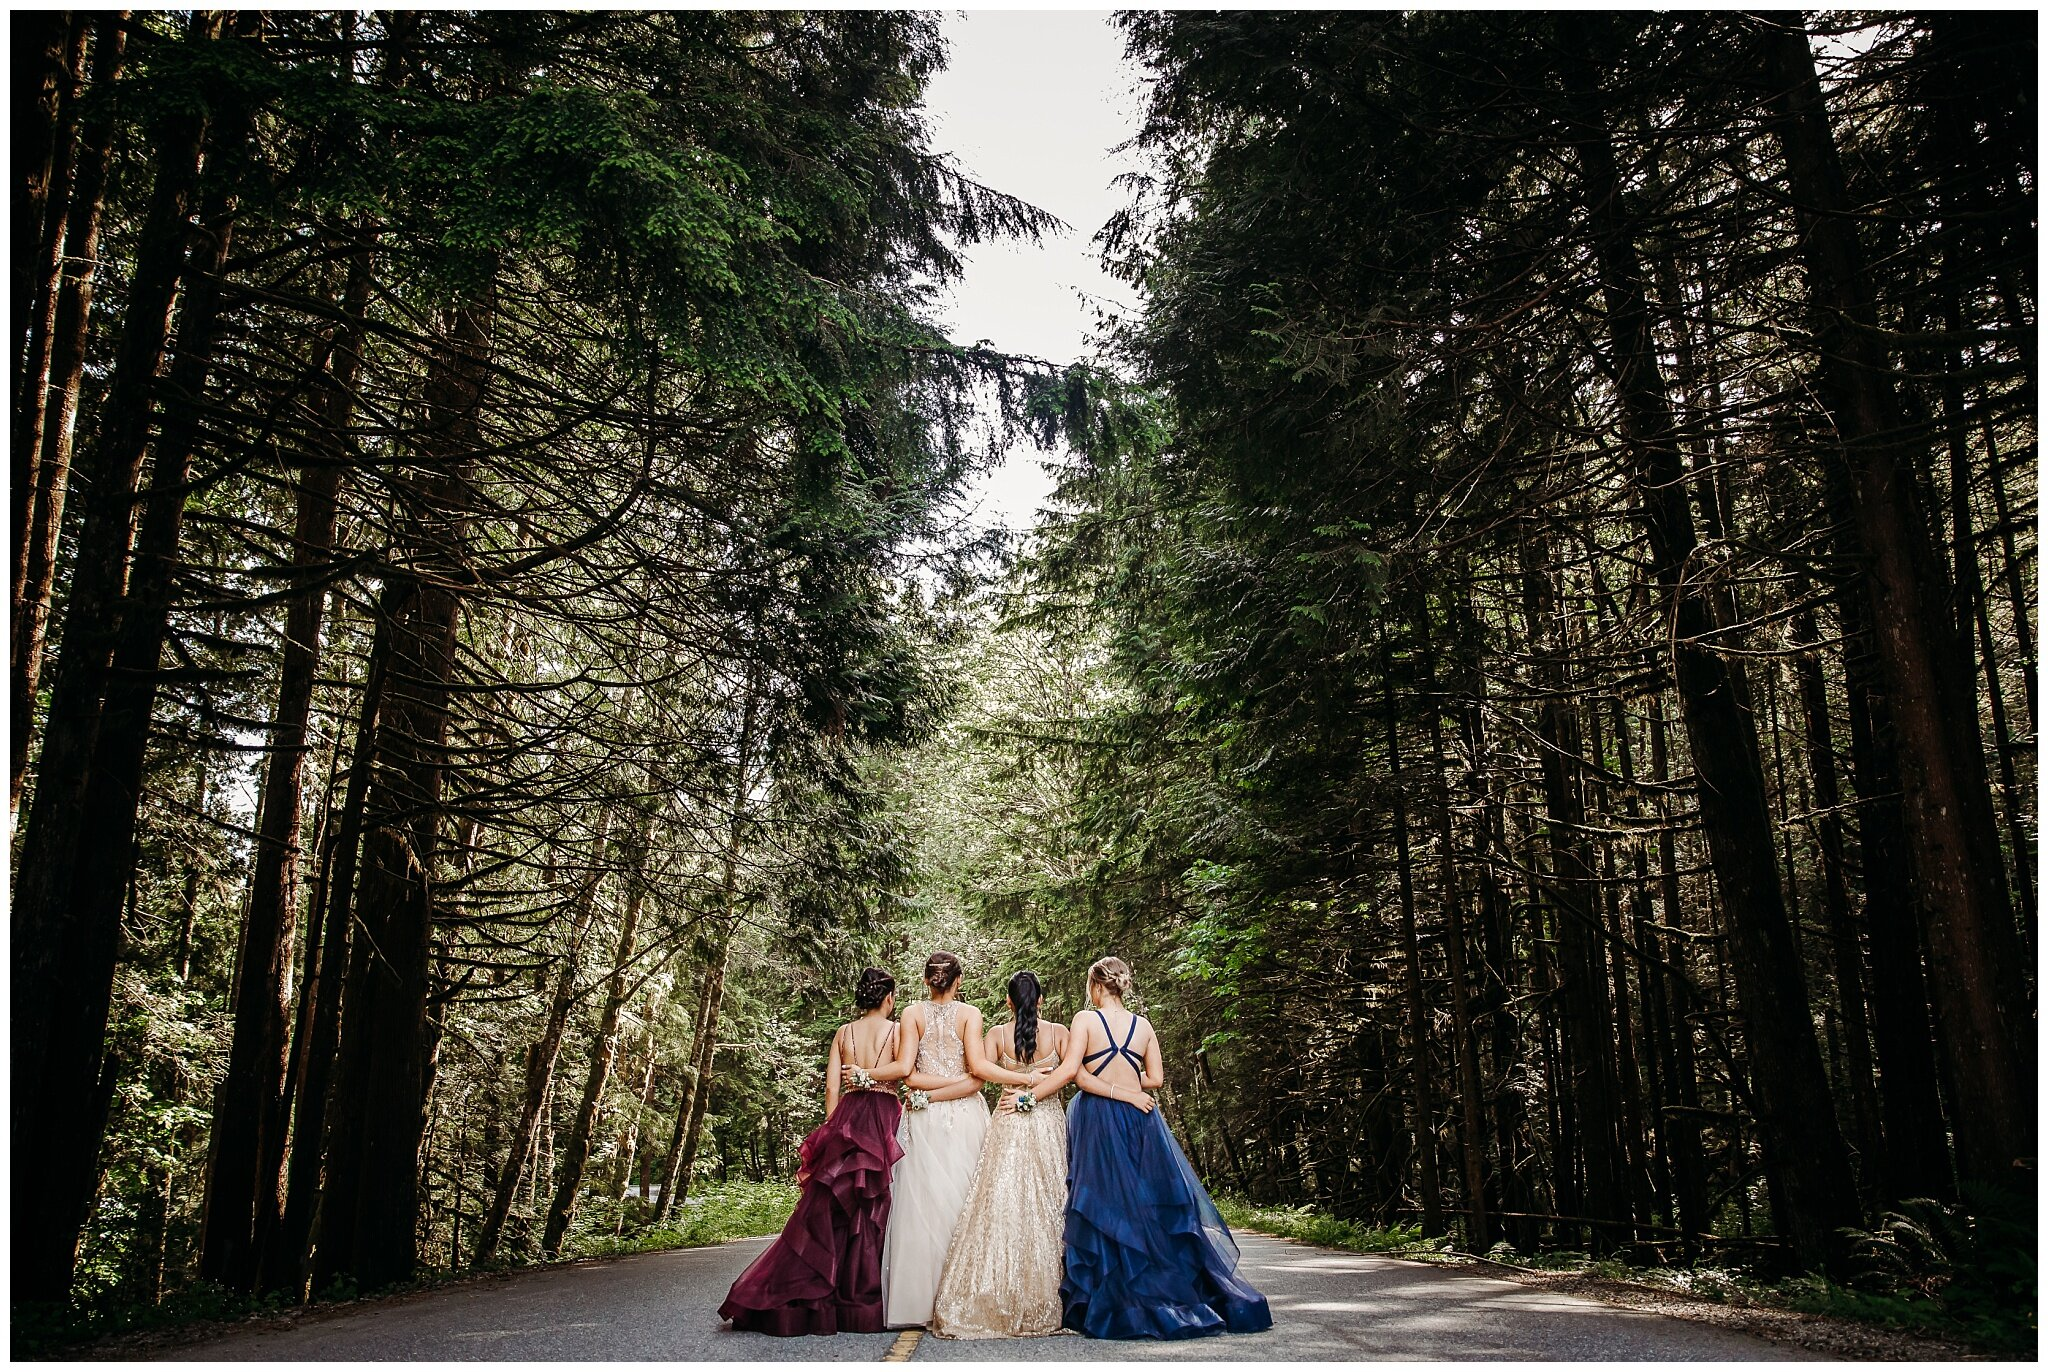 Abbotsford Highschool Prom Graduation Photographer 2019 Abbotsford fun bright_0023.jpg